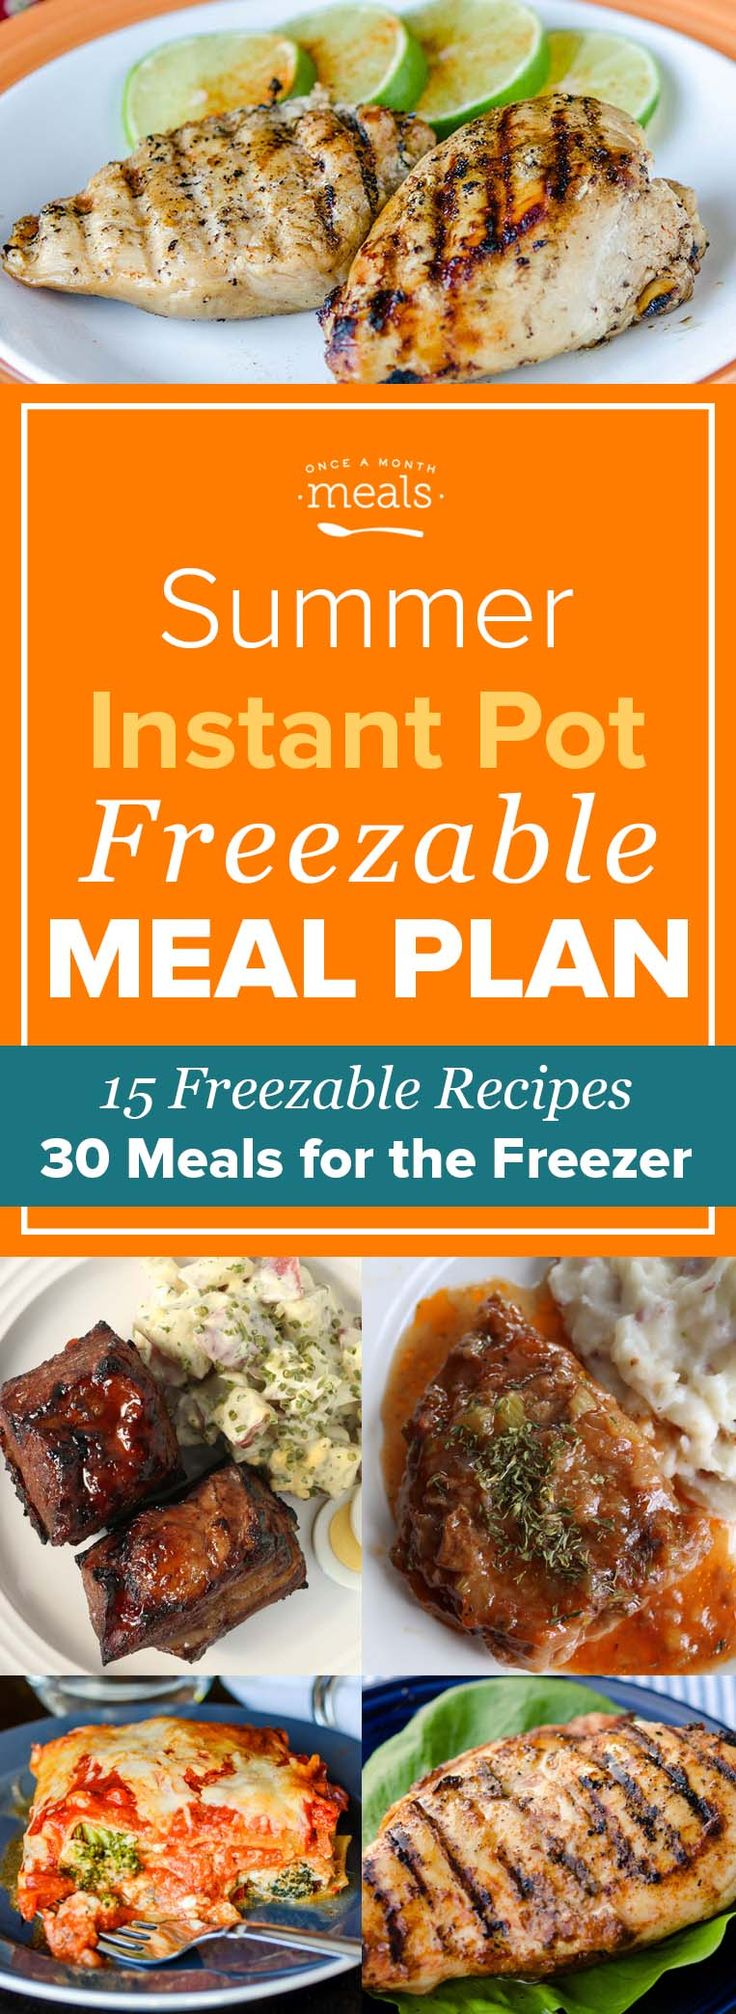 Spicy Firecracker Short Ribs, succulent Ginger Pork Tenderloin, and Cheesy Vegetarian Veggie Lasagna are just a few of the dinners you'll have ready to throw in your Instant Pot with this Summer Freezer Meal Plan!